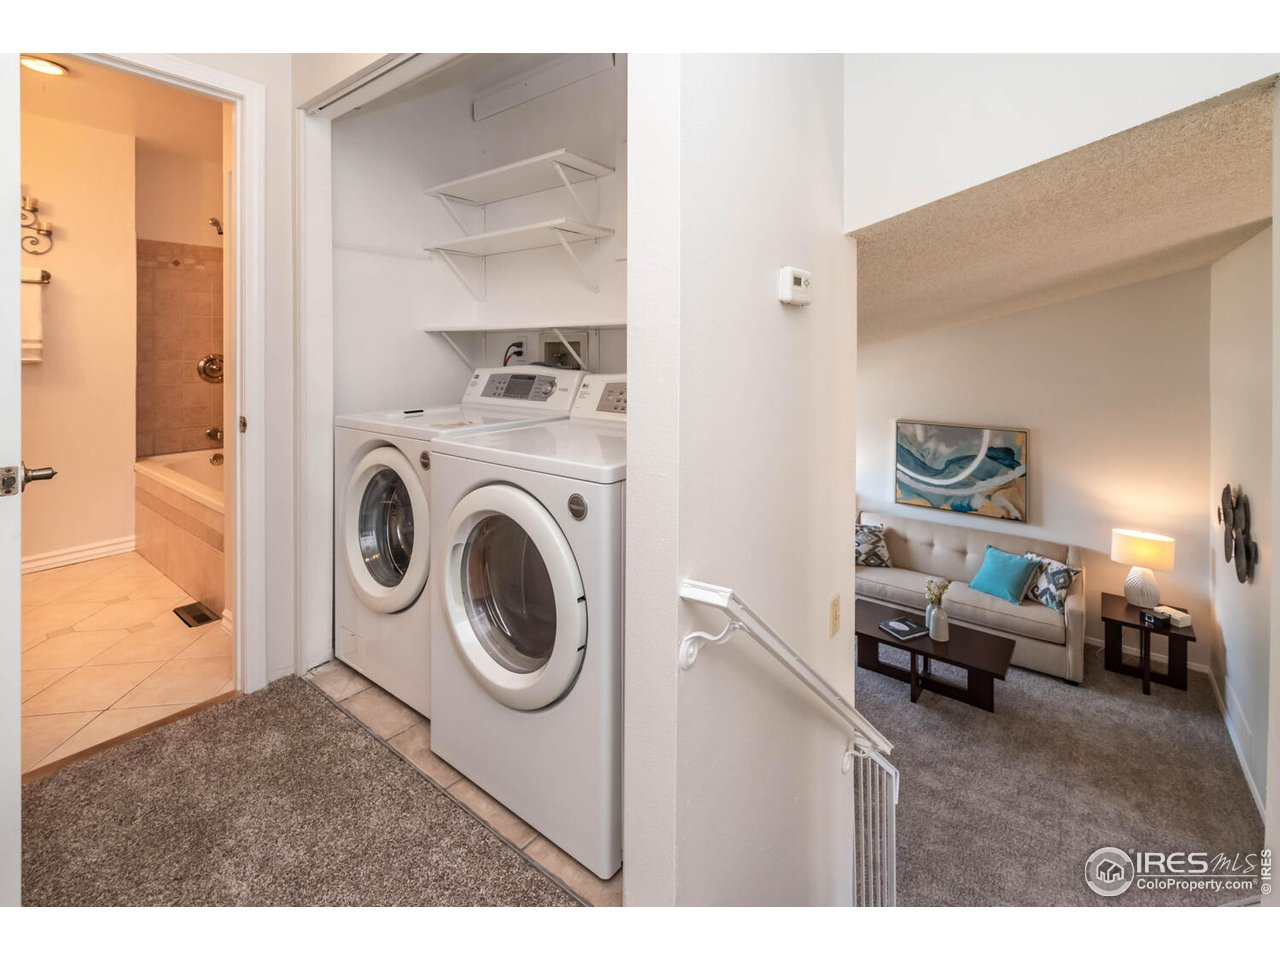 Front loading washer and dryer included